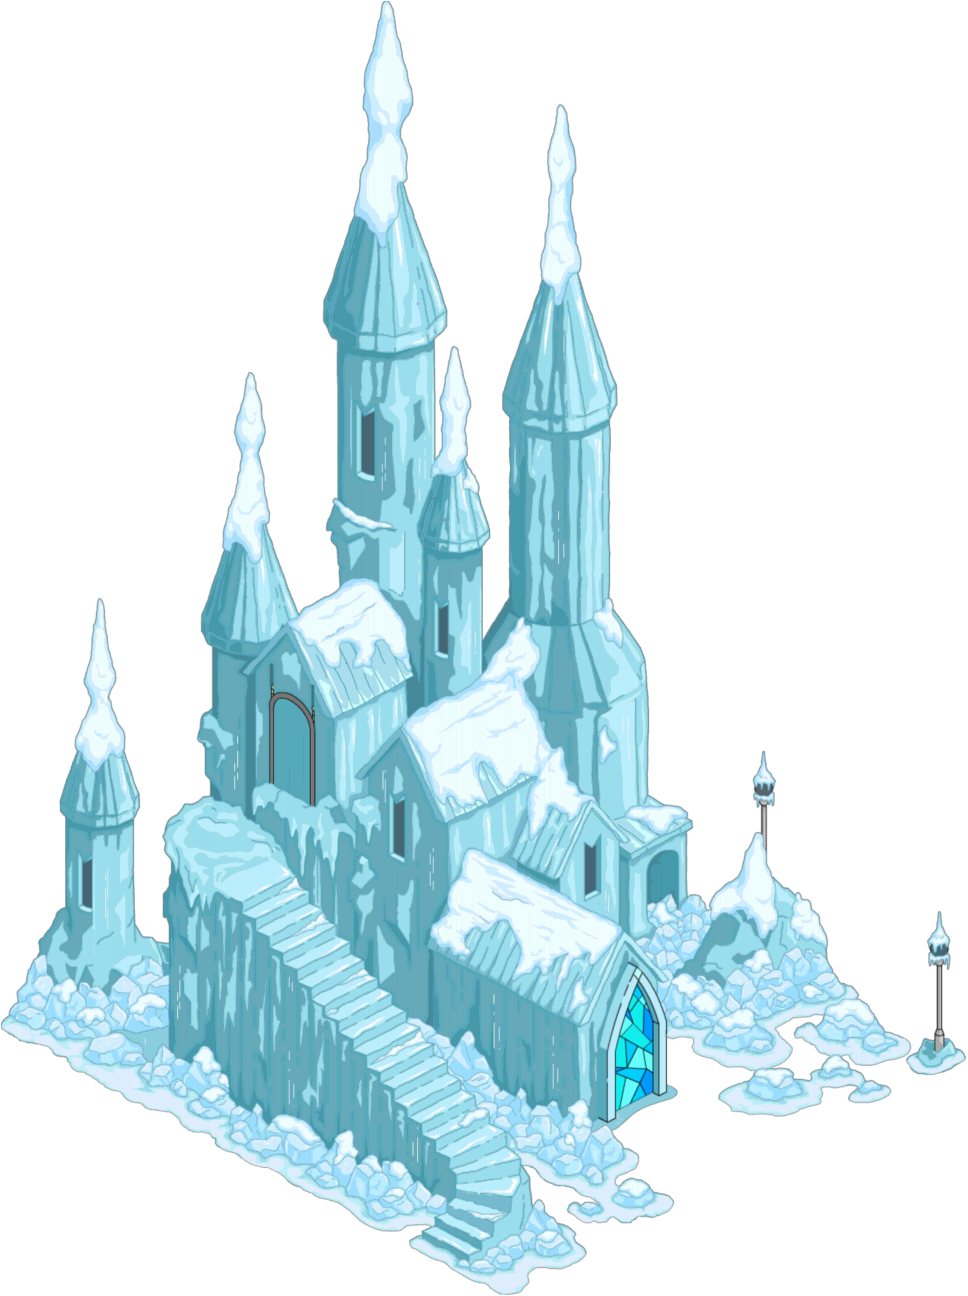 jpg download Ice Castle PNG Transparent Ice Castle